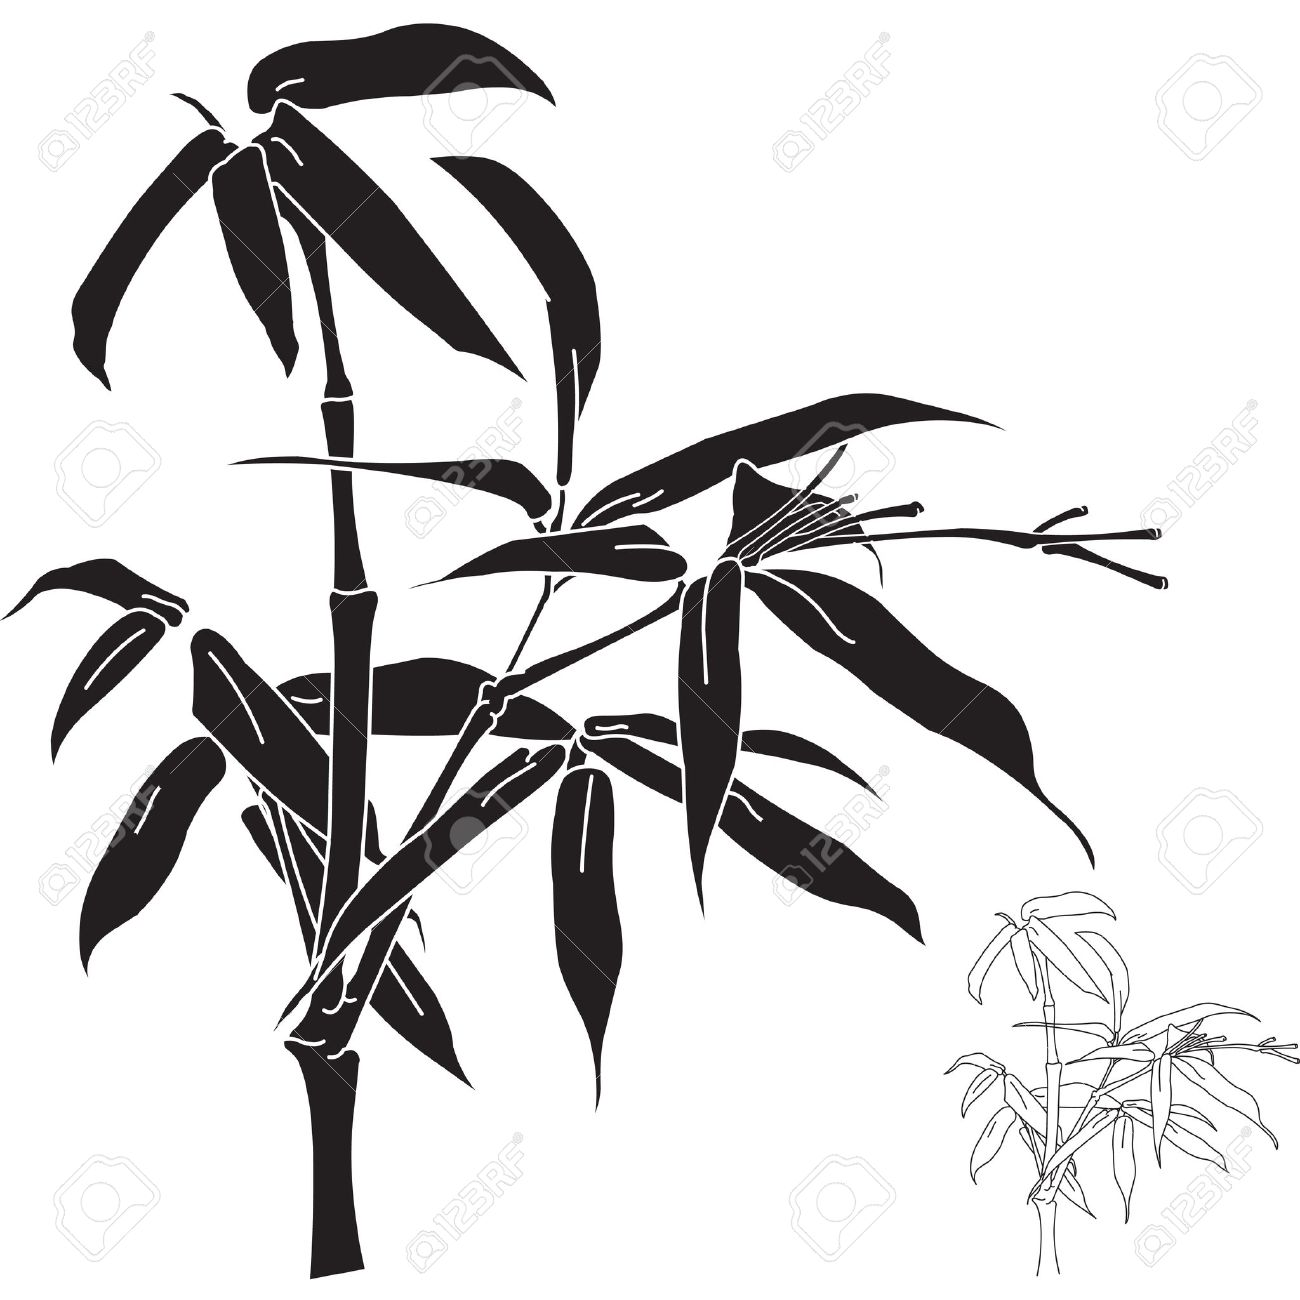 Bamboo Clipart Silhouette Bamboo Silhouette Transparent